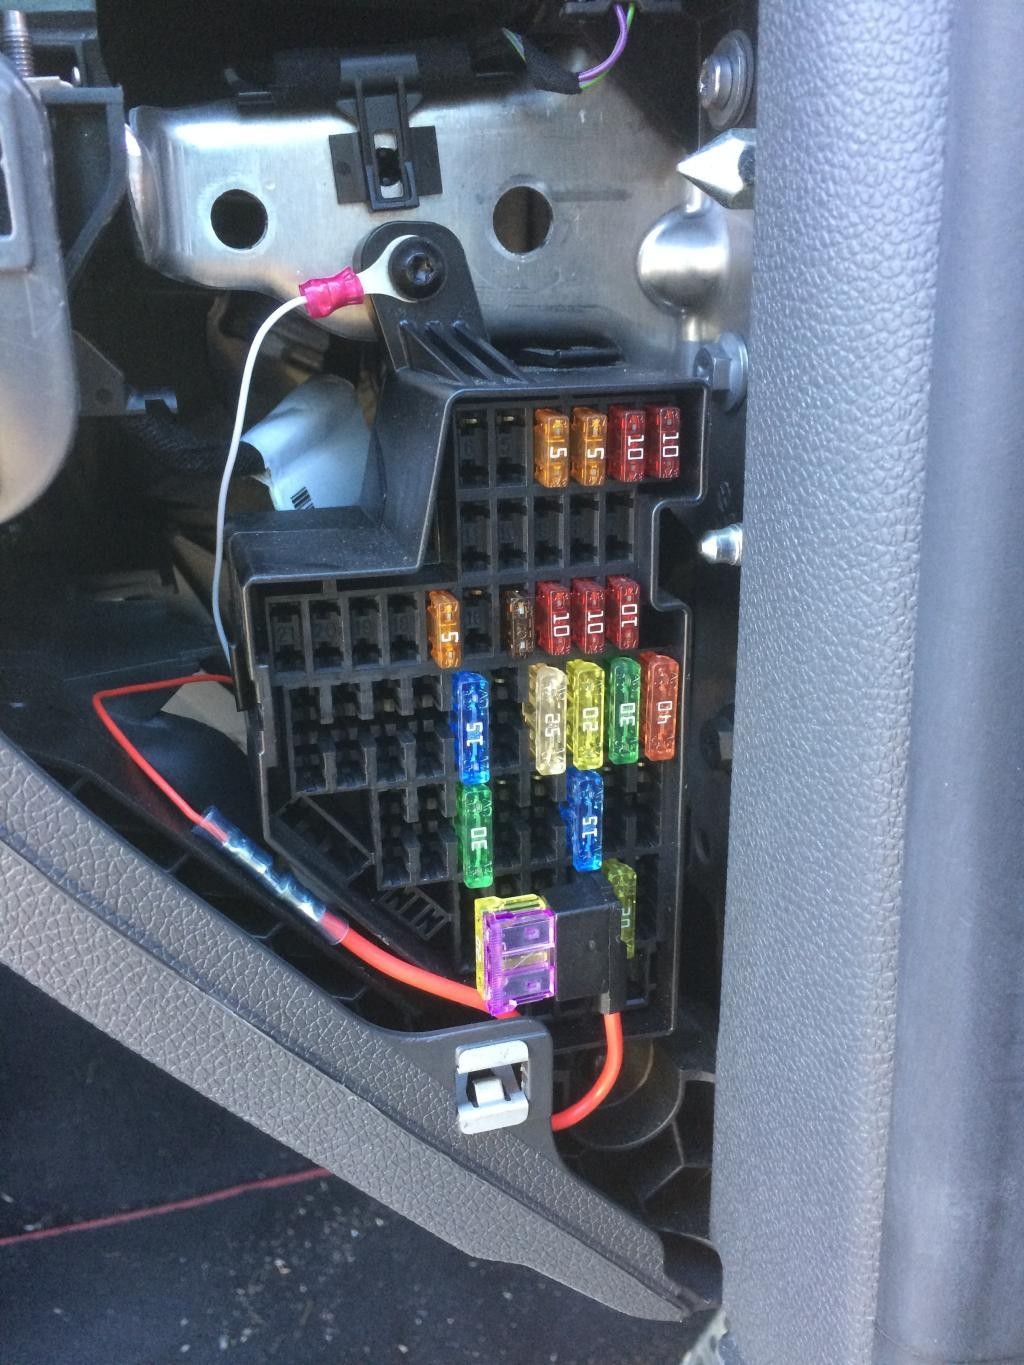 How To Centre Console Usb Port Guides Troubleshooting Skoda Octavia Fuse Box Location 4 Run The 12v Female Socket Through Side Of Your Dash Where Board Is And Just Guide It Towards On Bottom